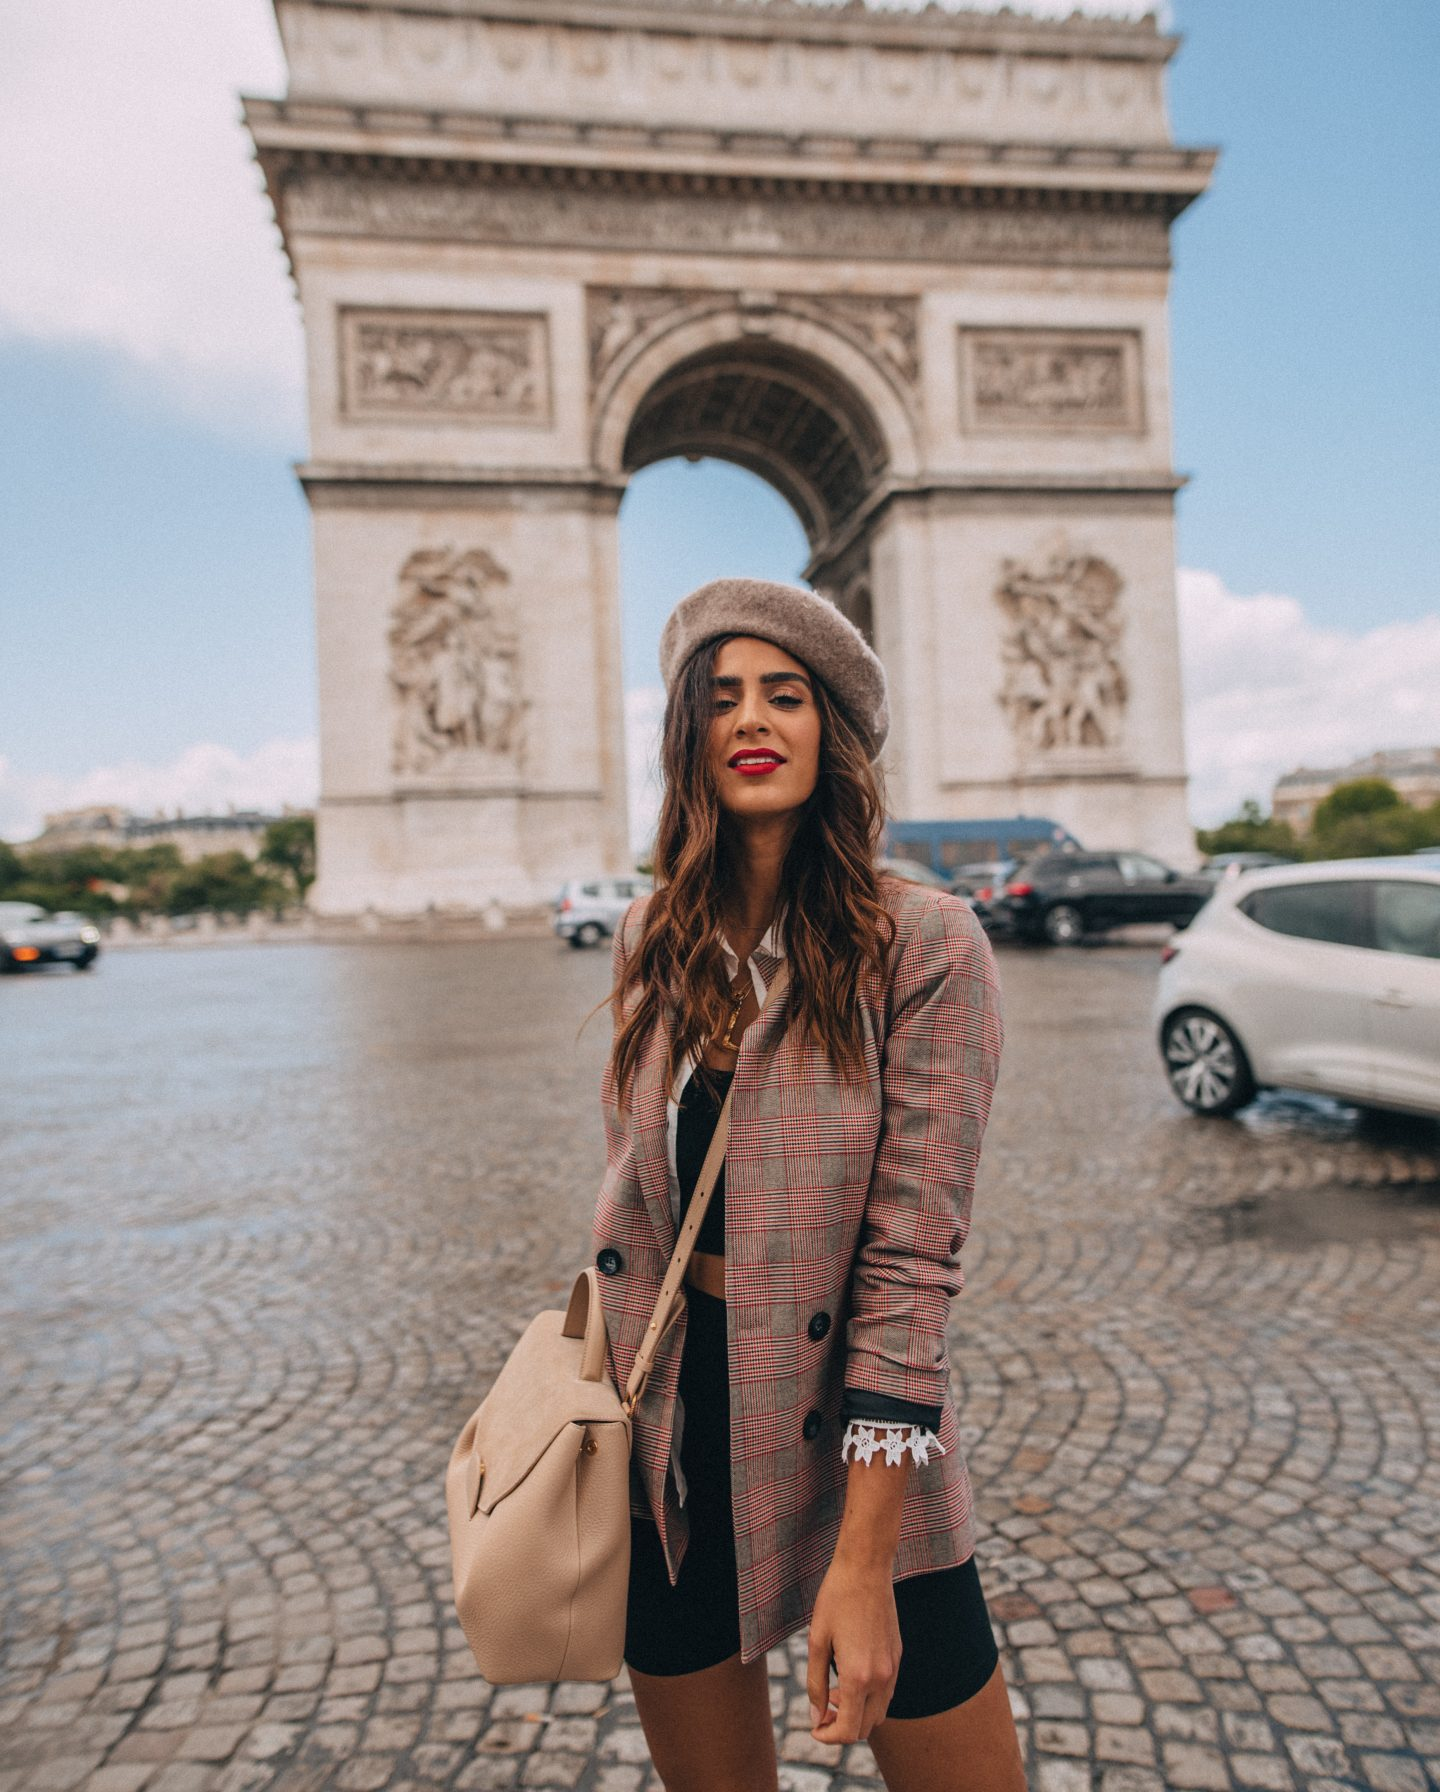 Lisa Homsy in Paris at the Arc de Triomphe